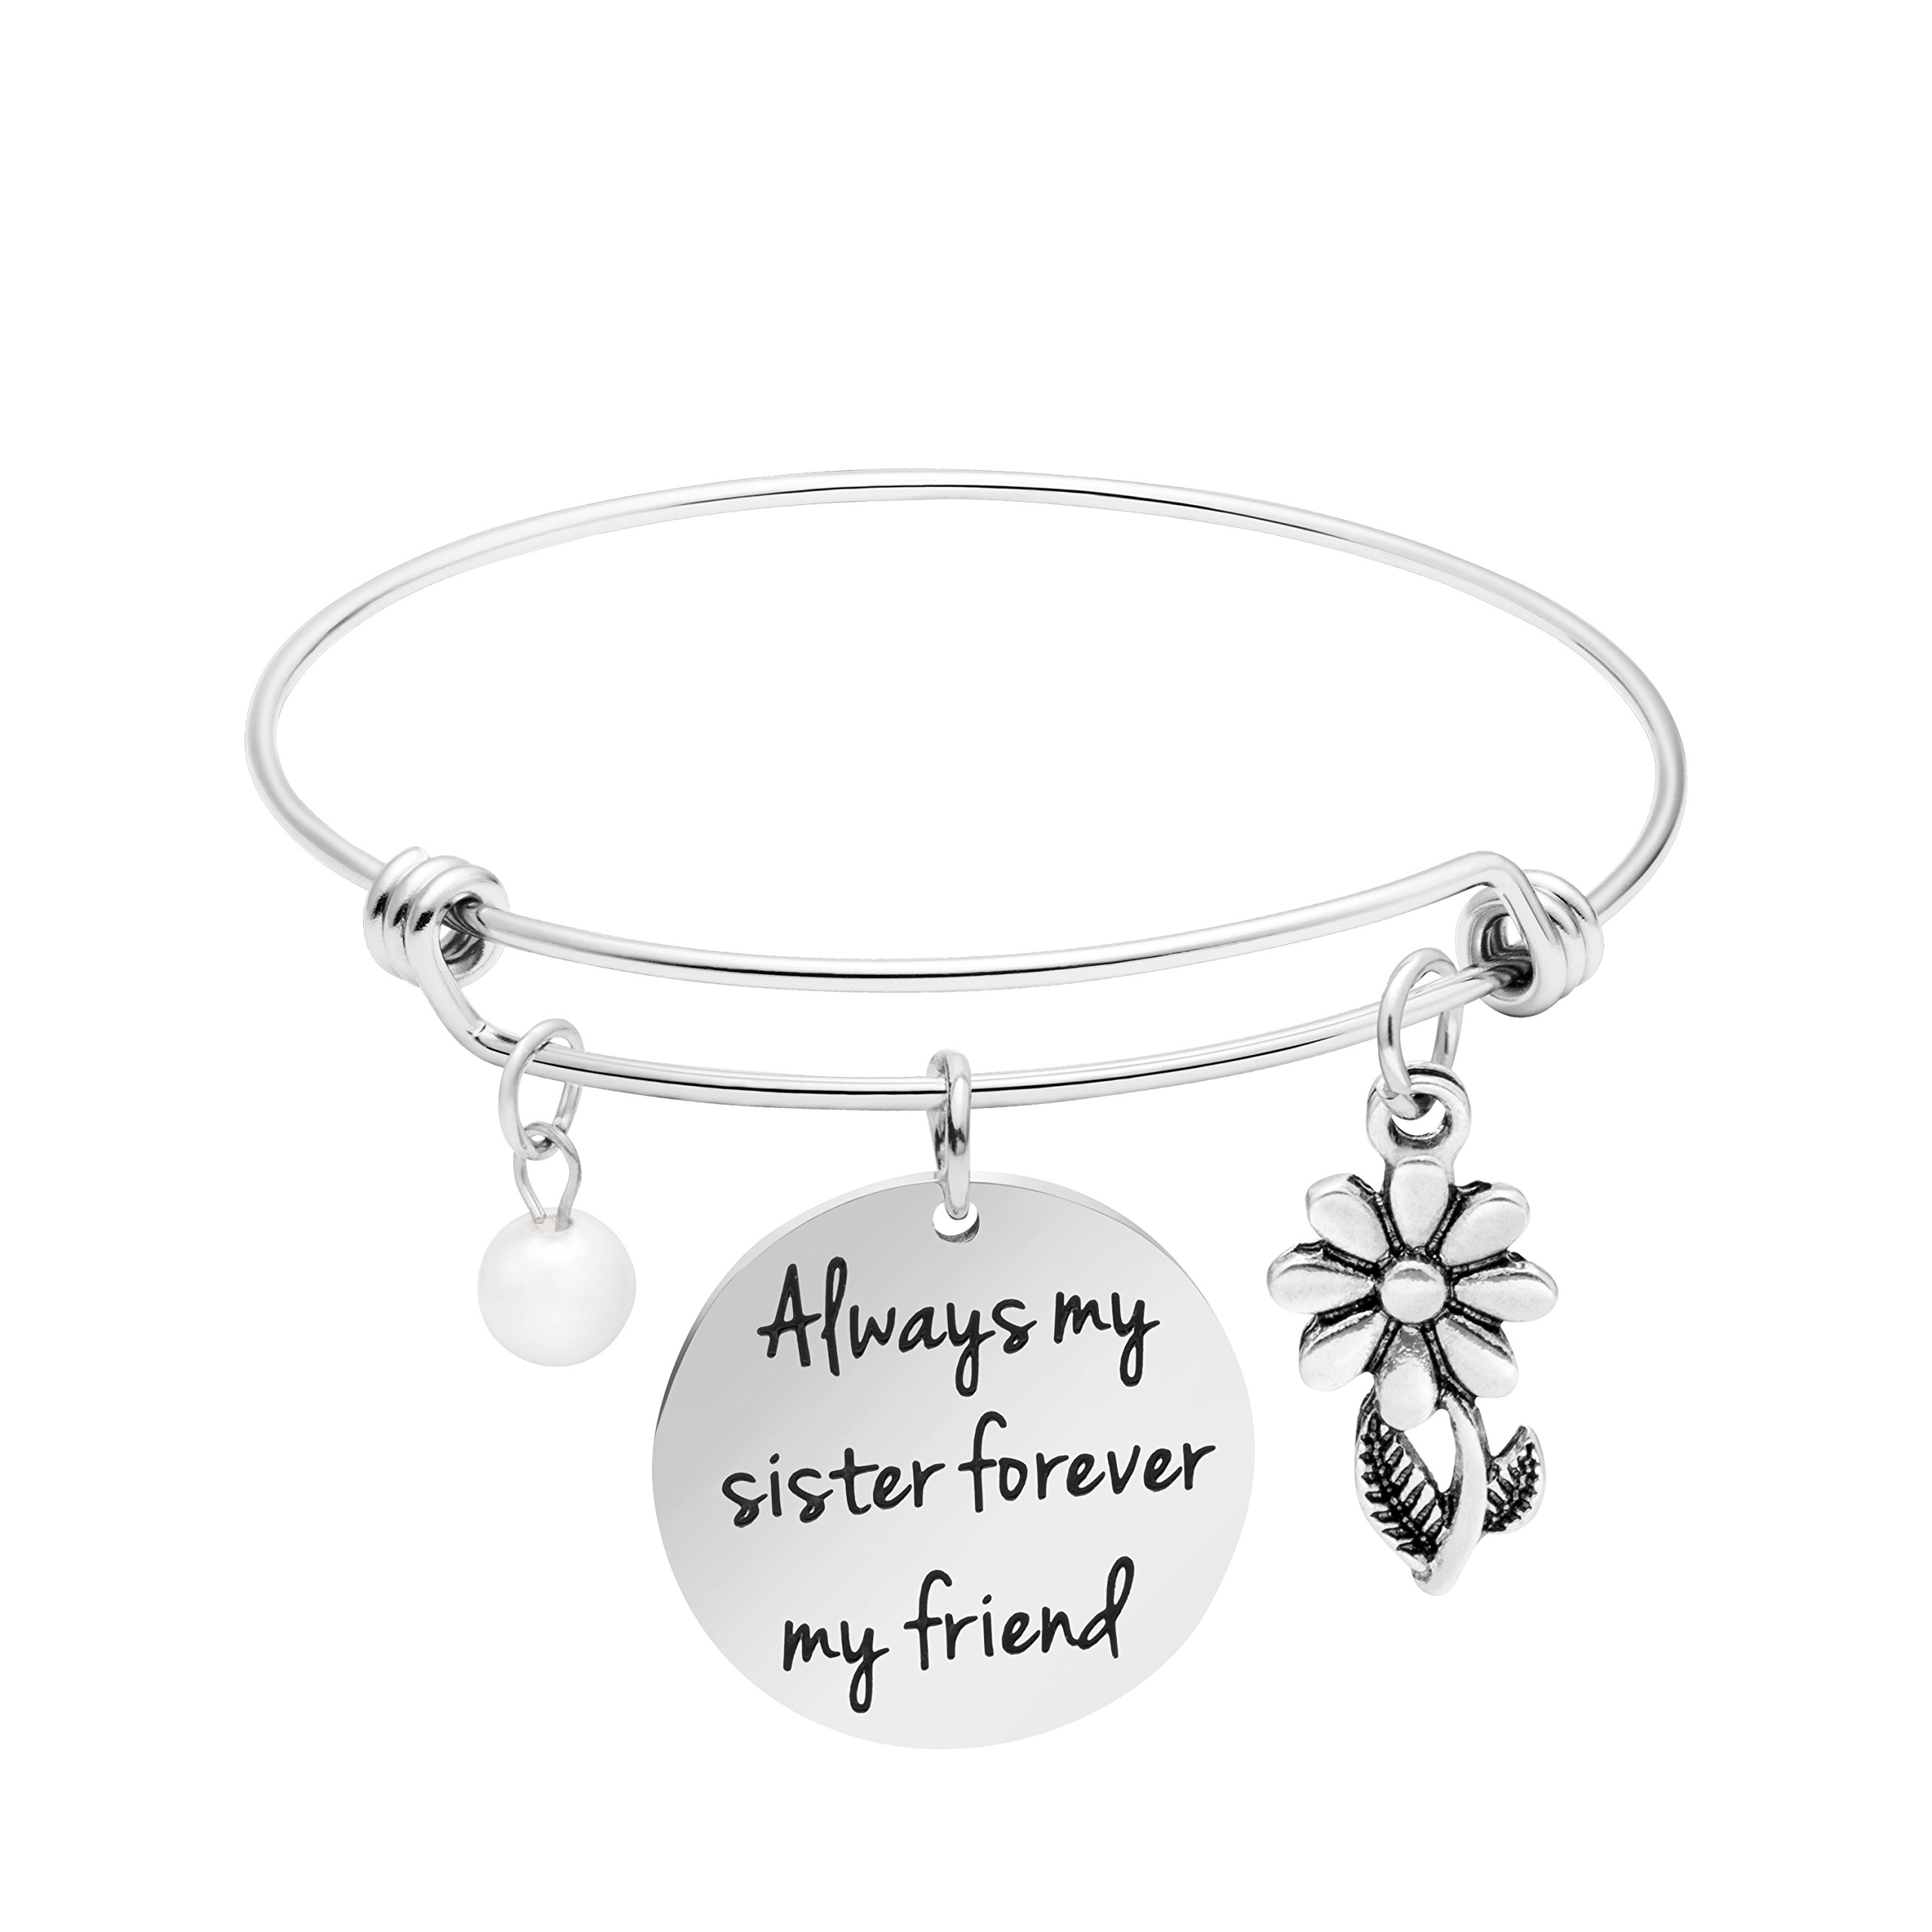 Awegift Gift for Sister Bangle Bracelets Stainless Steel Jewelry Wedding Gifts for Her Always My Sister Forever My Friend